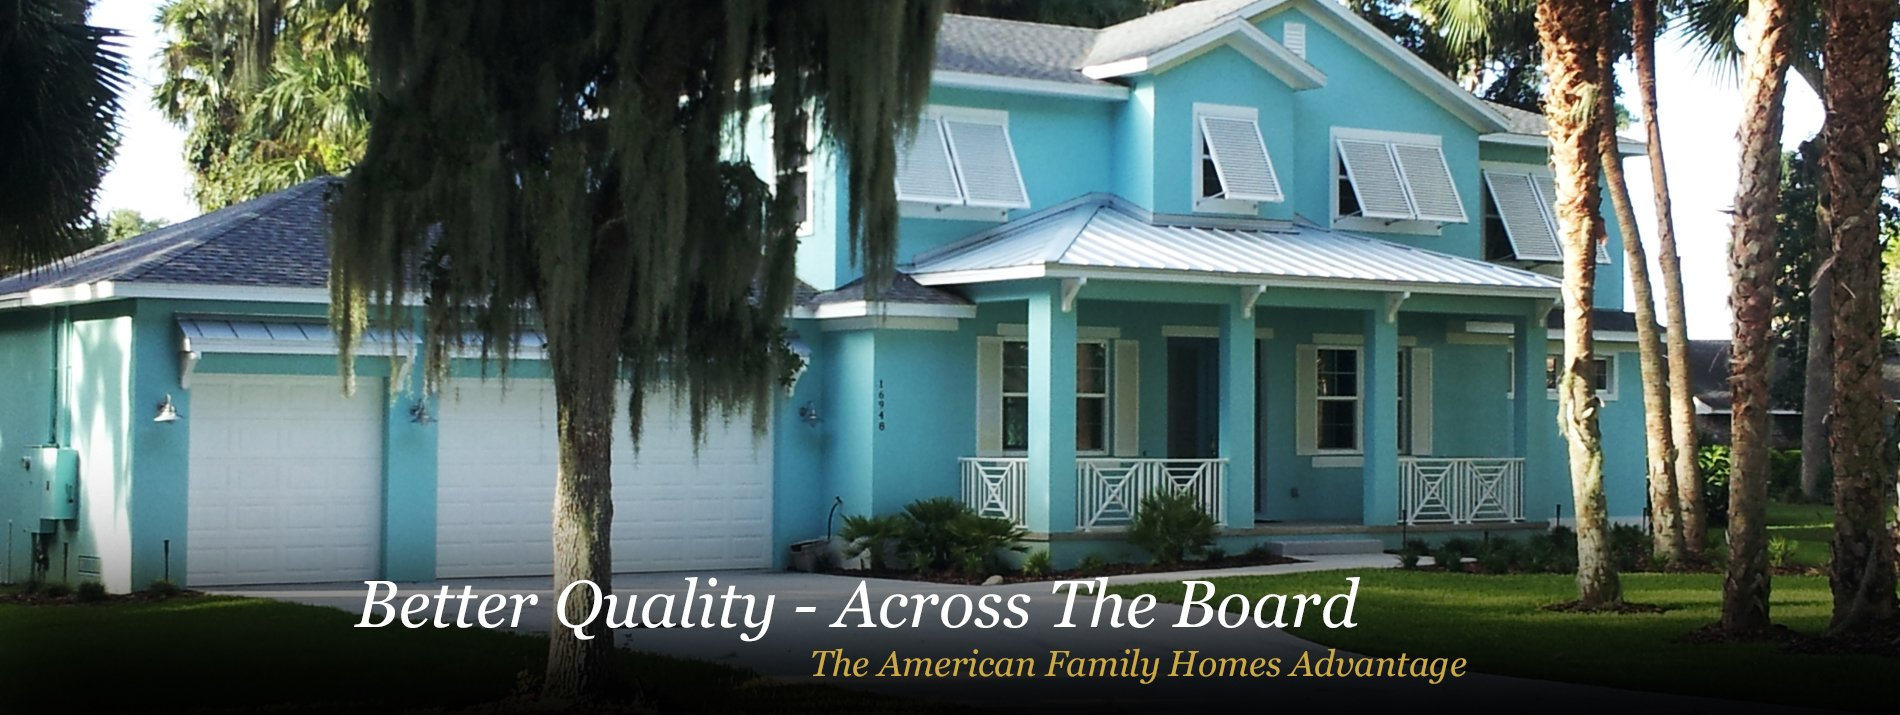 Central florida home builders